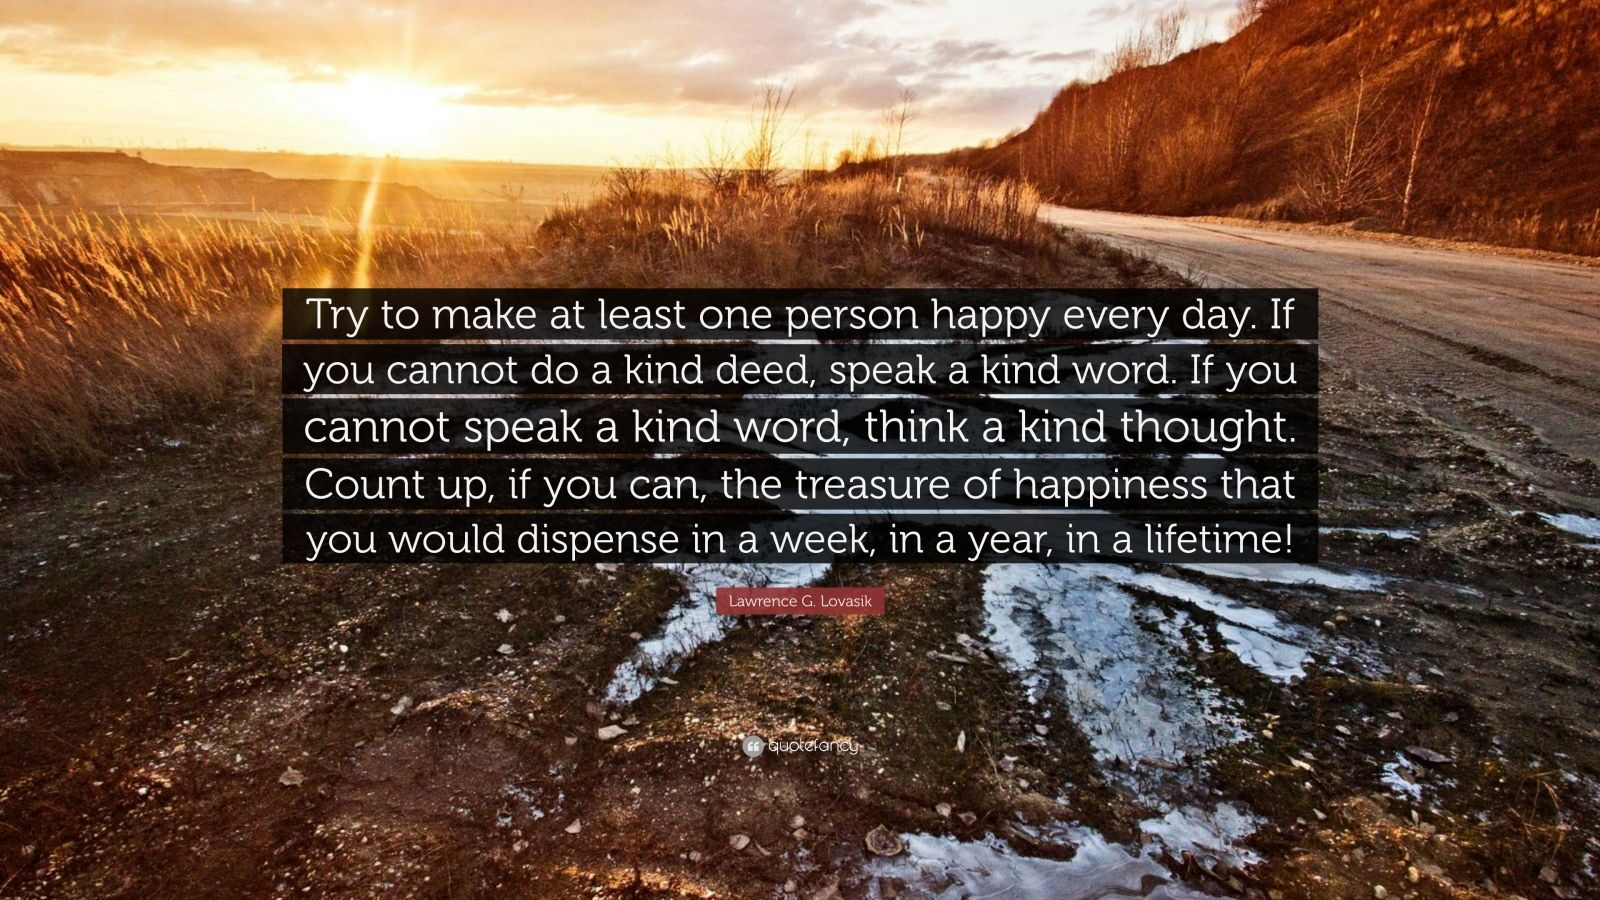 """Lawrence G. Lovasik Quote: """"Try to make at least one person happy every day. If you cannot do a kind deed, speak a kind word. If you cannot speak a kind word, think a kind thought. Count up, if you can, the treasure of happiness that you would dispense in a week, in a year, in a lifetime!"""""""